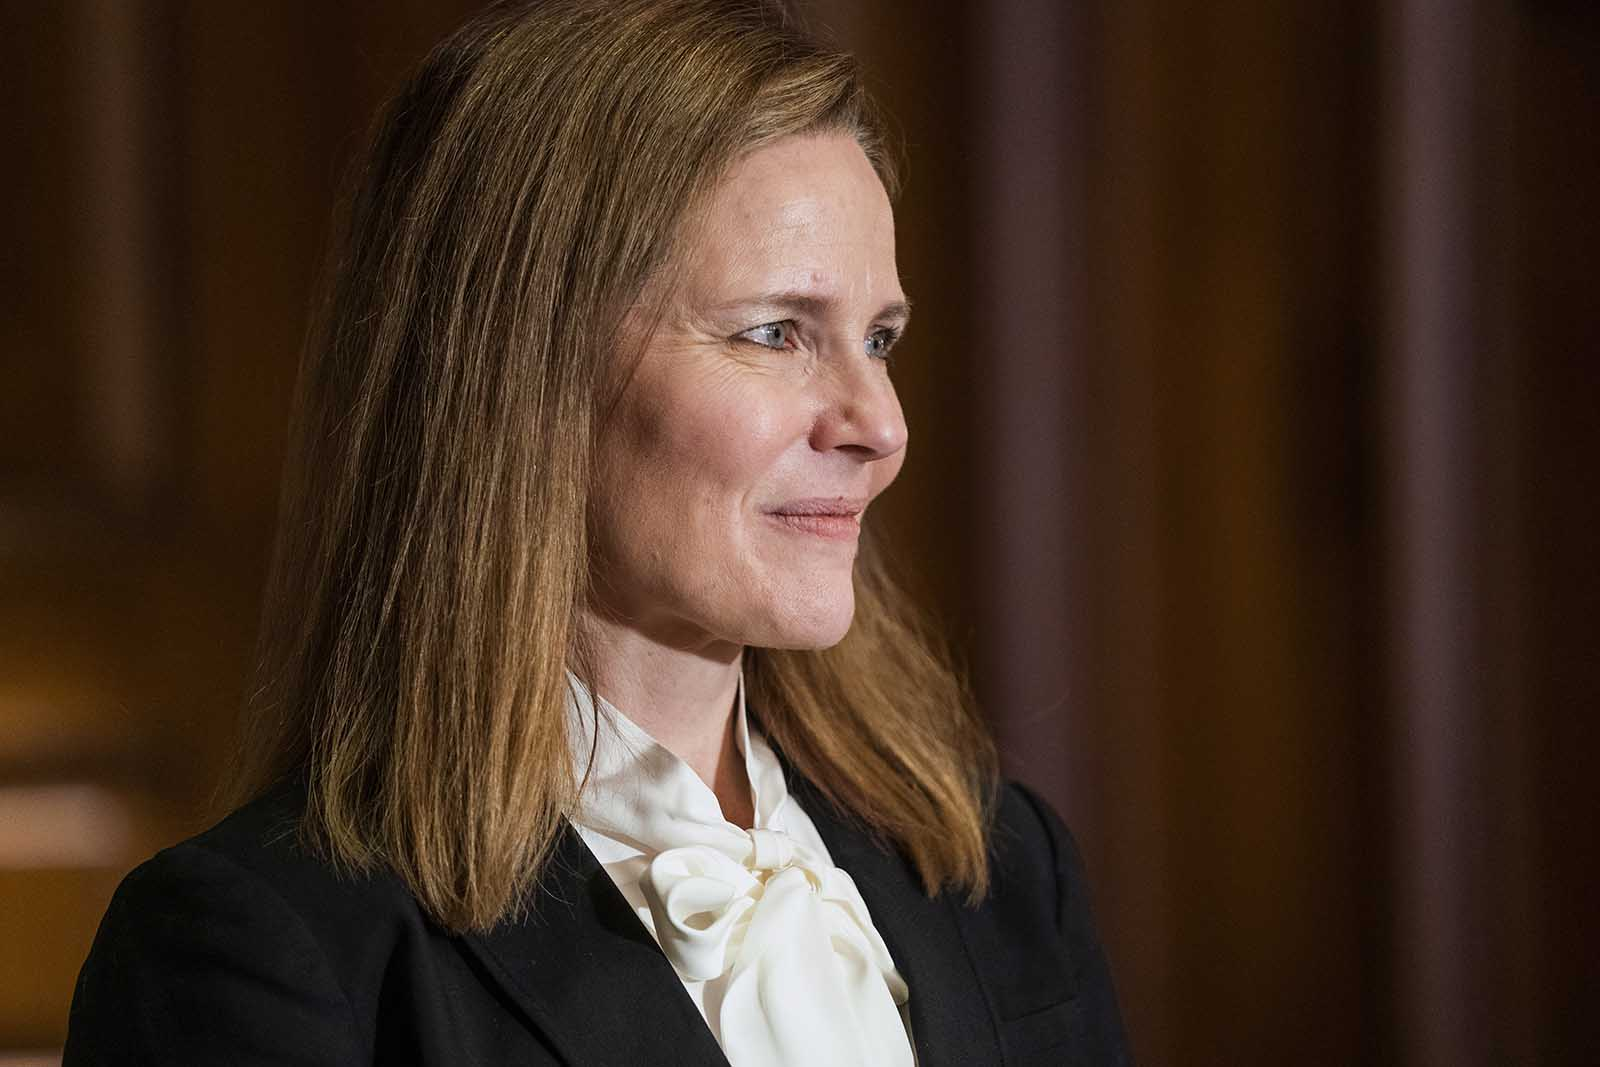 Judge Amy Coney Barrett, President Donald Trumps nominee for the U.S. Supreme Court, meets with Sen. Bill Cassidy on Capitol Hill in Washington, on Thursday, October 1.